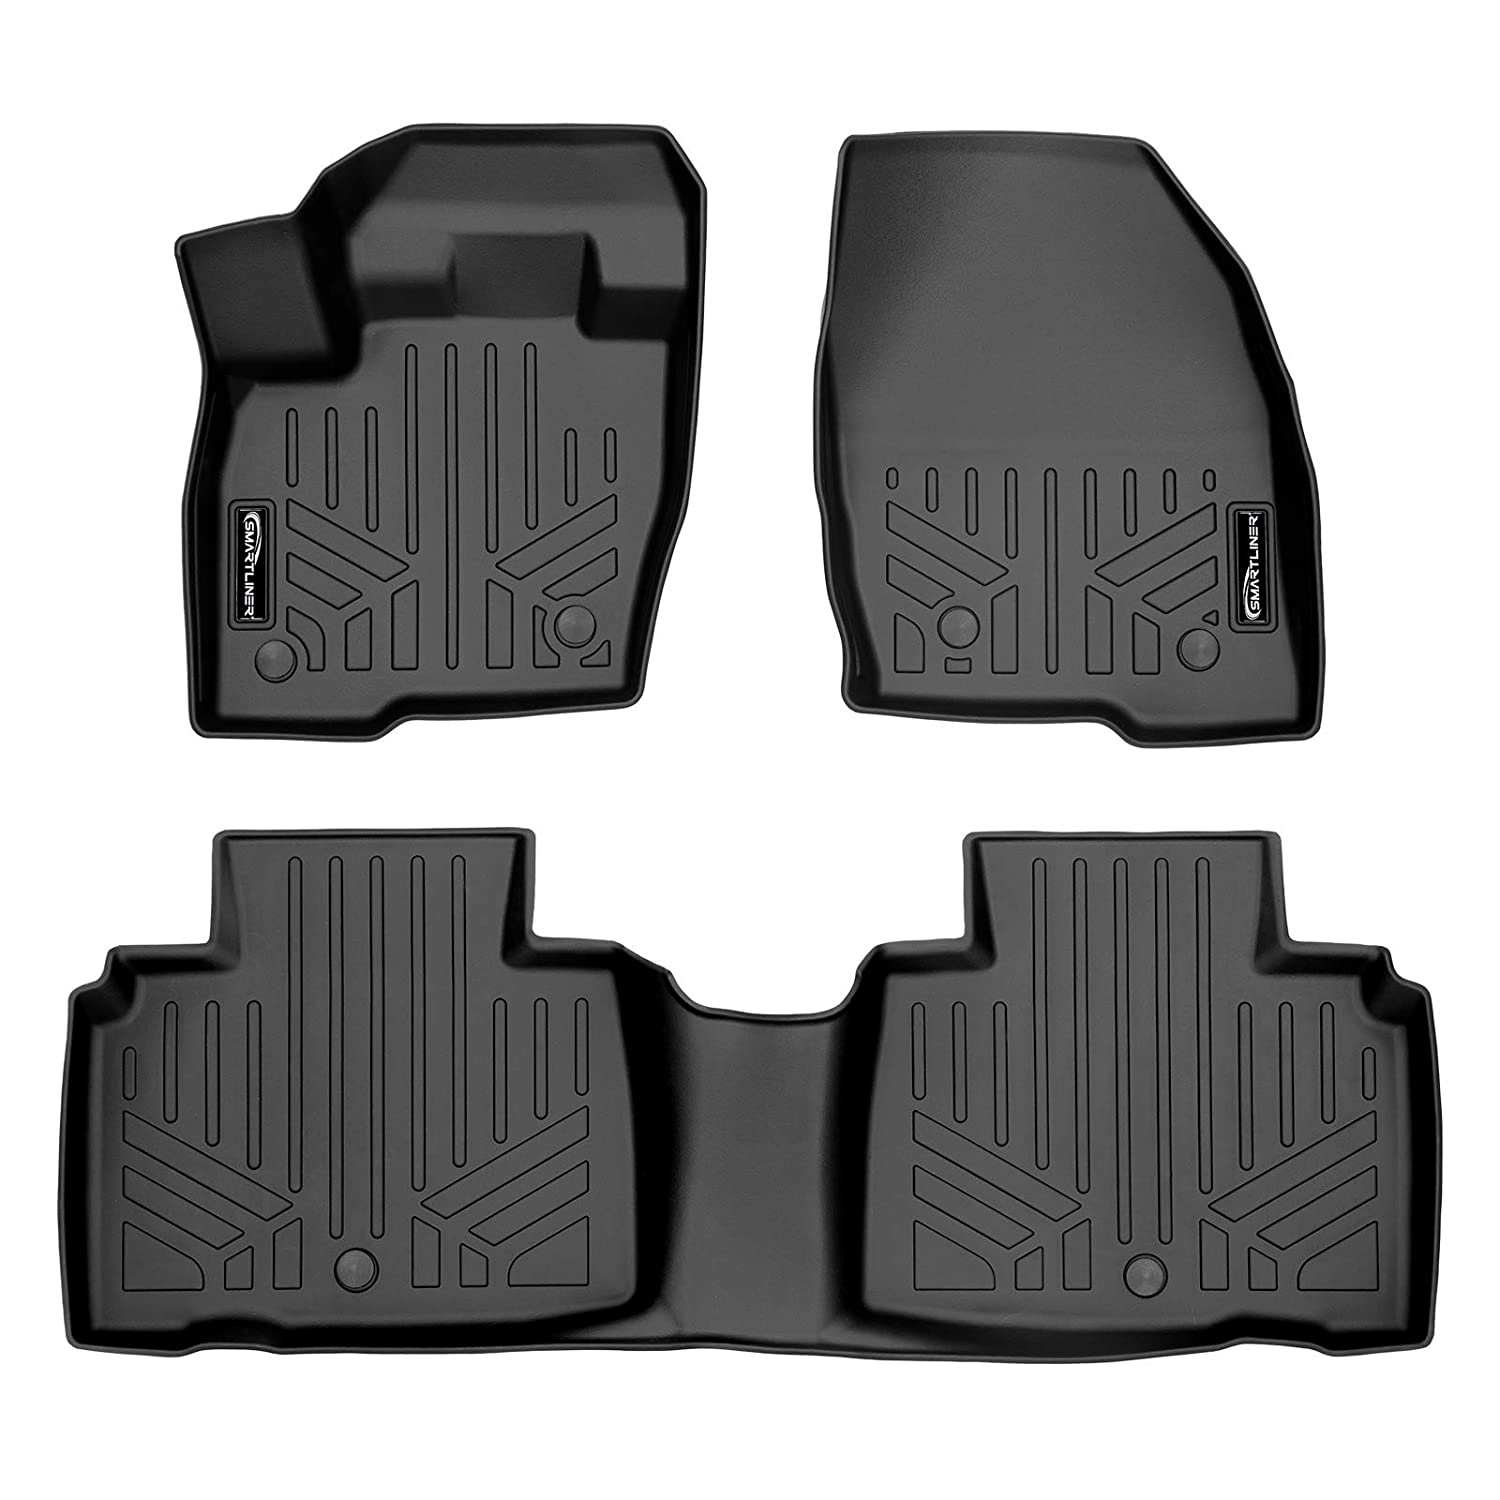 2005 GGBAILEY D3704A-S1A-CH-BR Custom Fit Car Mats for 2004 Passenger /& Rear Floor 2006 2007 Volvo S40 Brown Driver